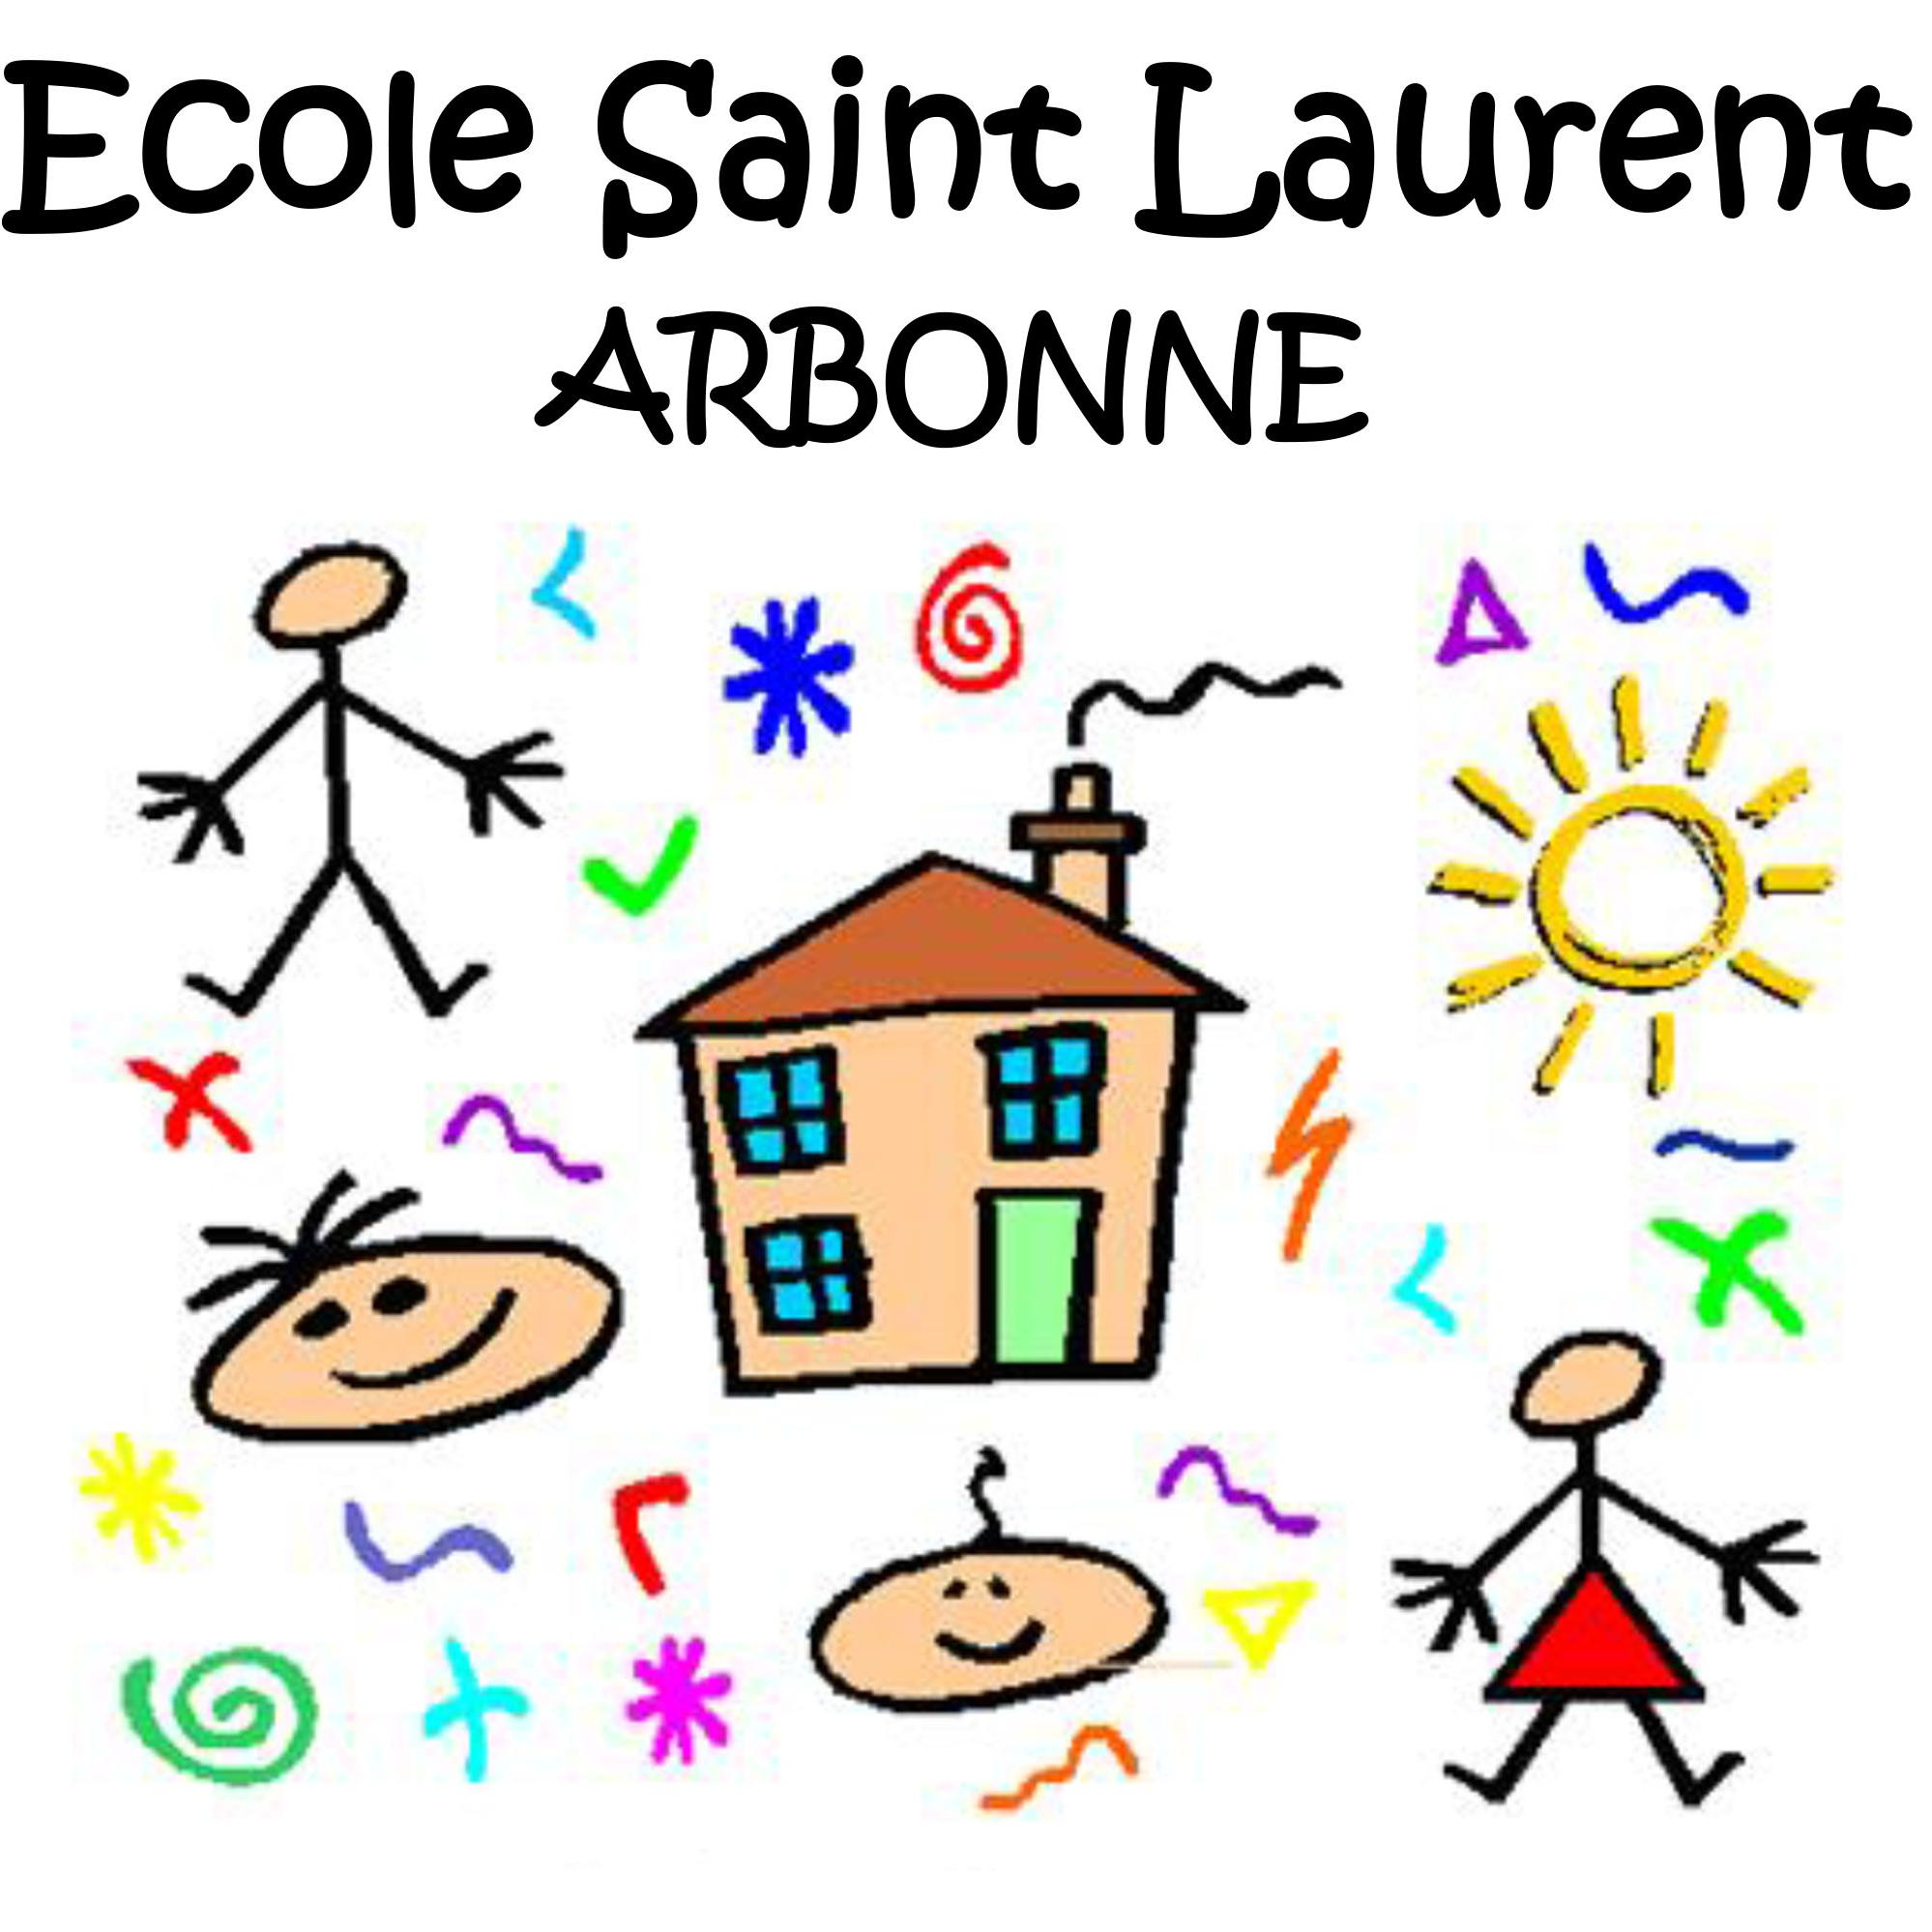 ecole-saint-laurent